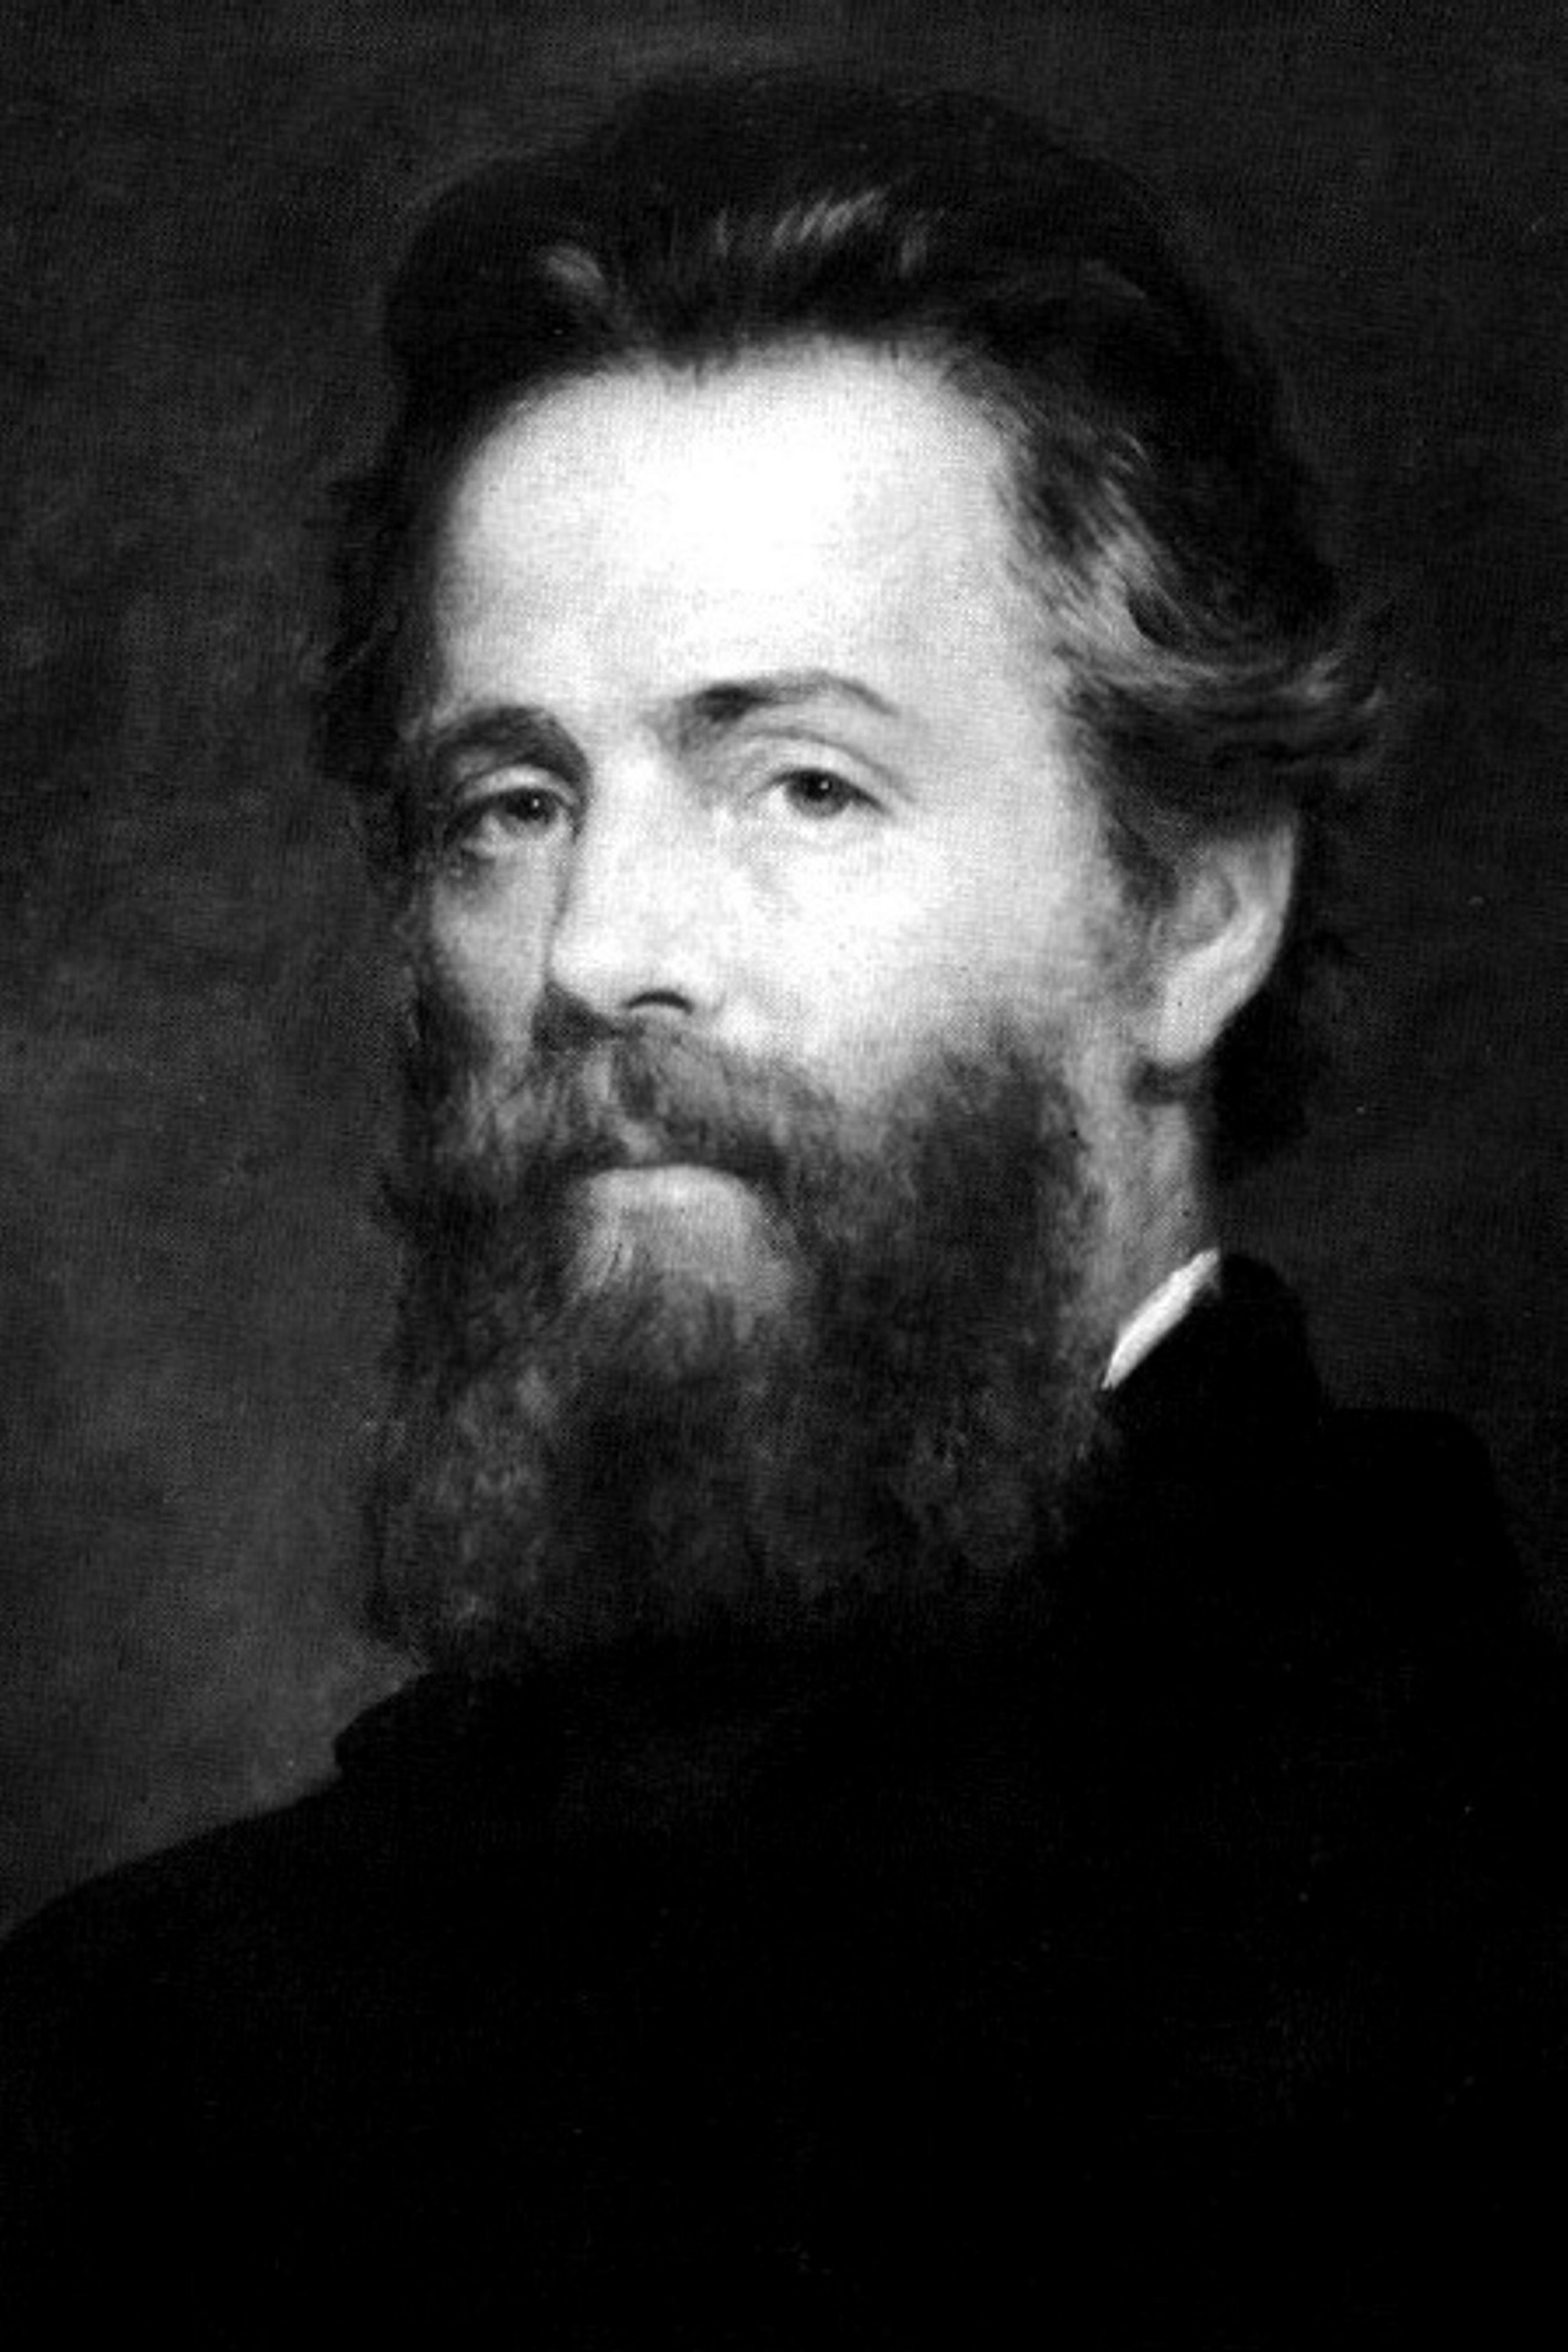 an introduction to the life of billy budd Billy budd study guide contains a biography of herman melville, literature essays, quiz questions, major themes, characters, and a full summary and analysis.